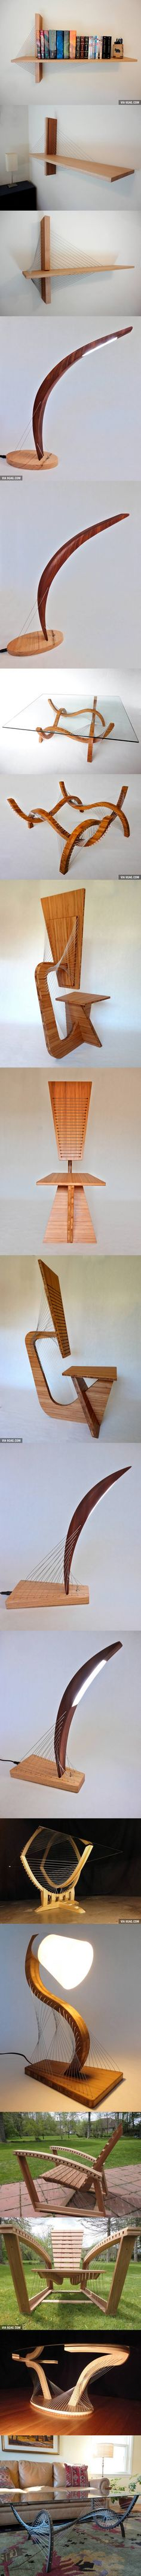 I design and make furniture that's held together completely by tension... What do you think?